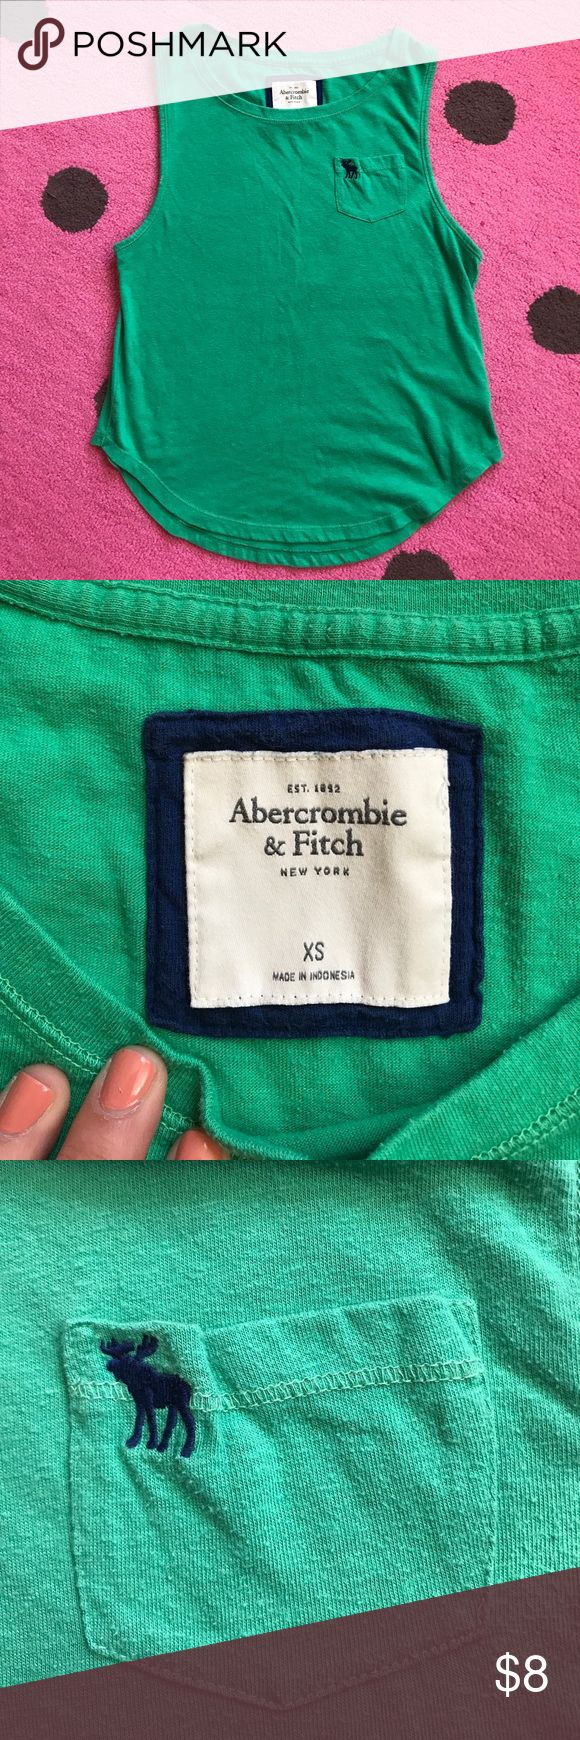 Green Abercrombie and Fitch Tank Super cute and worn a handful of times. Excellent condition-nothing wrong!! Please send offers 💛 fits a XS/S Abercrombie & Fitch Tops Tank Tops